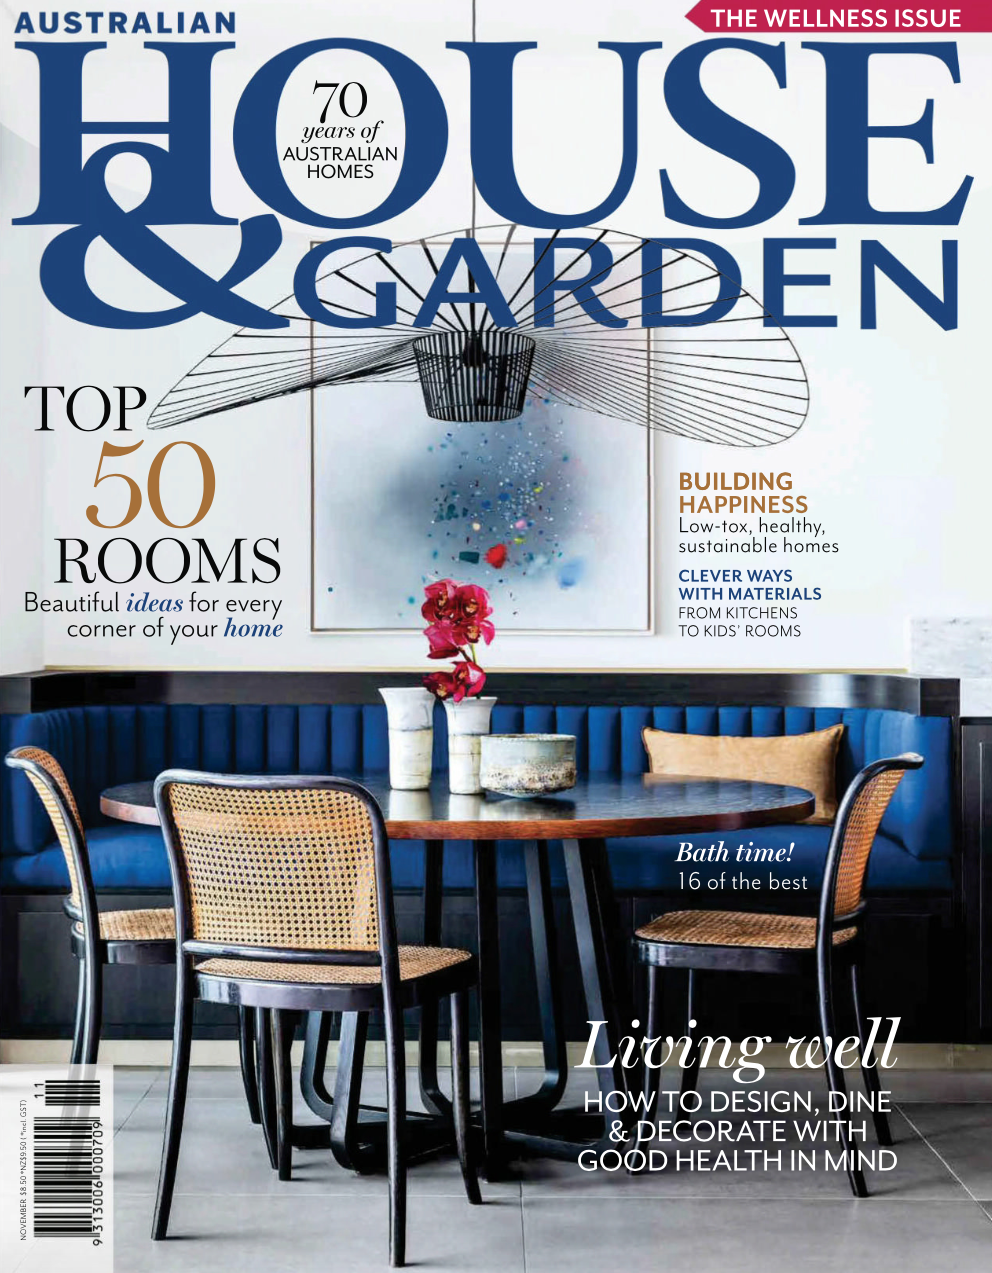 House and Garden Nov 2018 - Cover image - project by Alexandra Kidd styling Claire Delmar